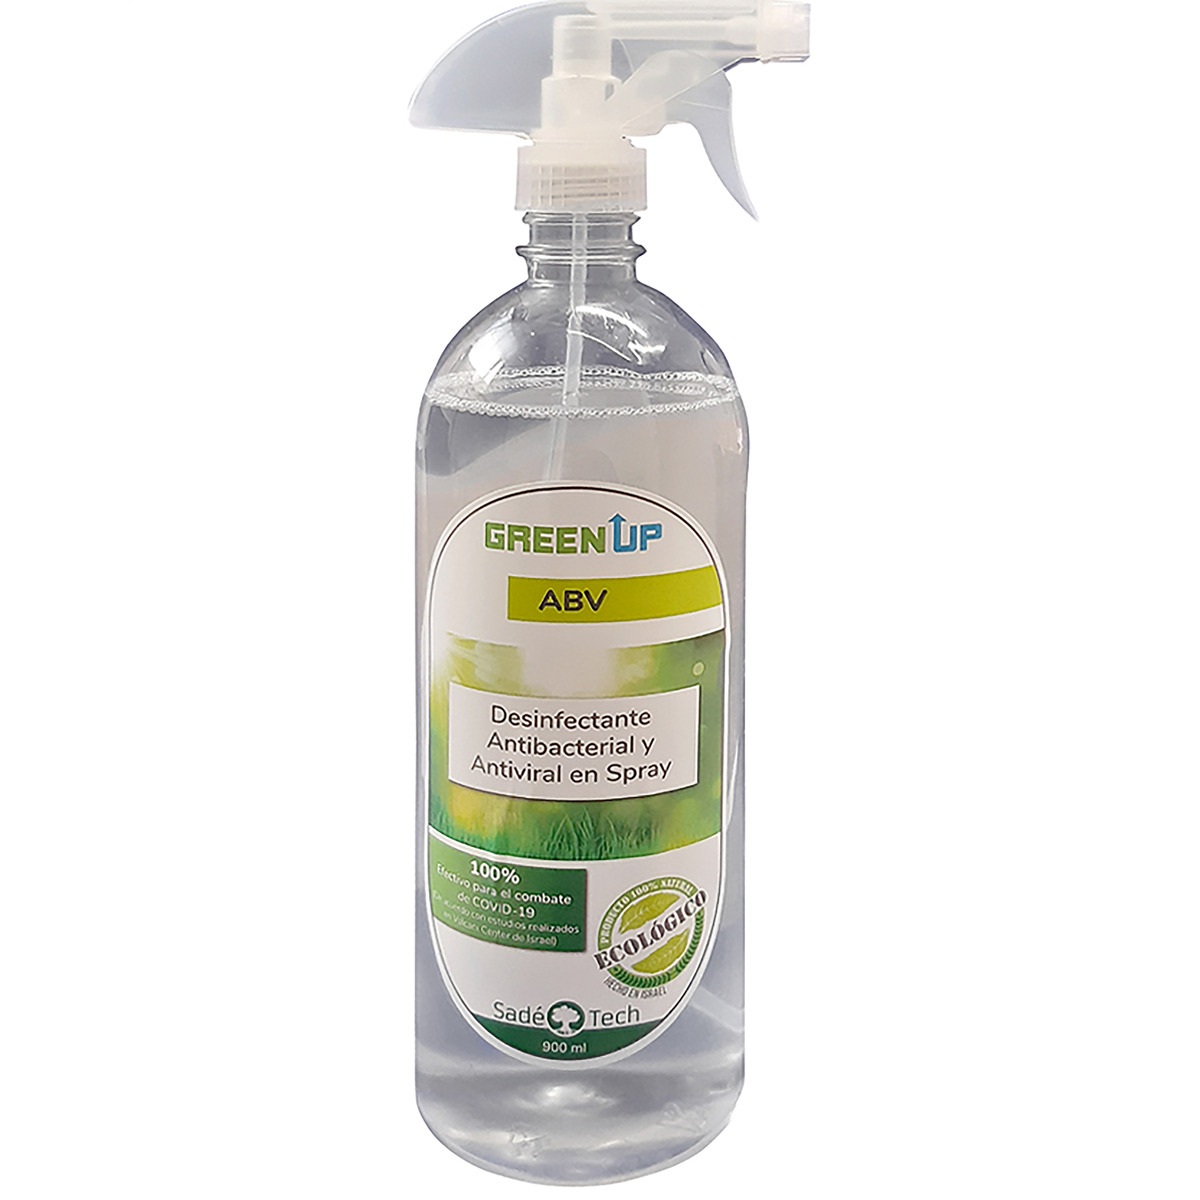 Desinfectante Anti Bacterial paq 4 pzas de 900ml Precio U.T. $180.00 M.N. + IVA